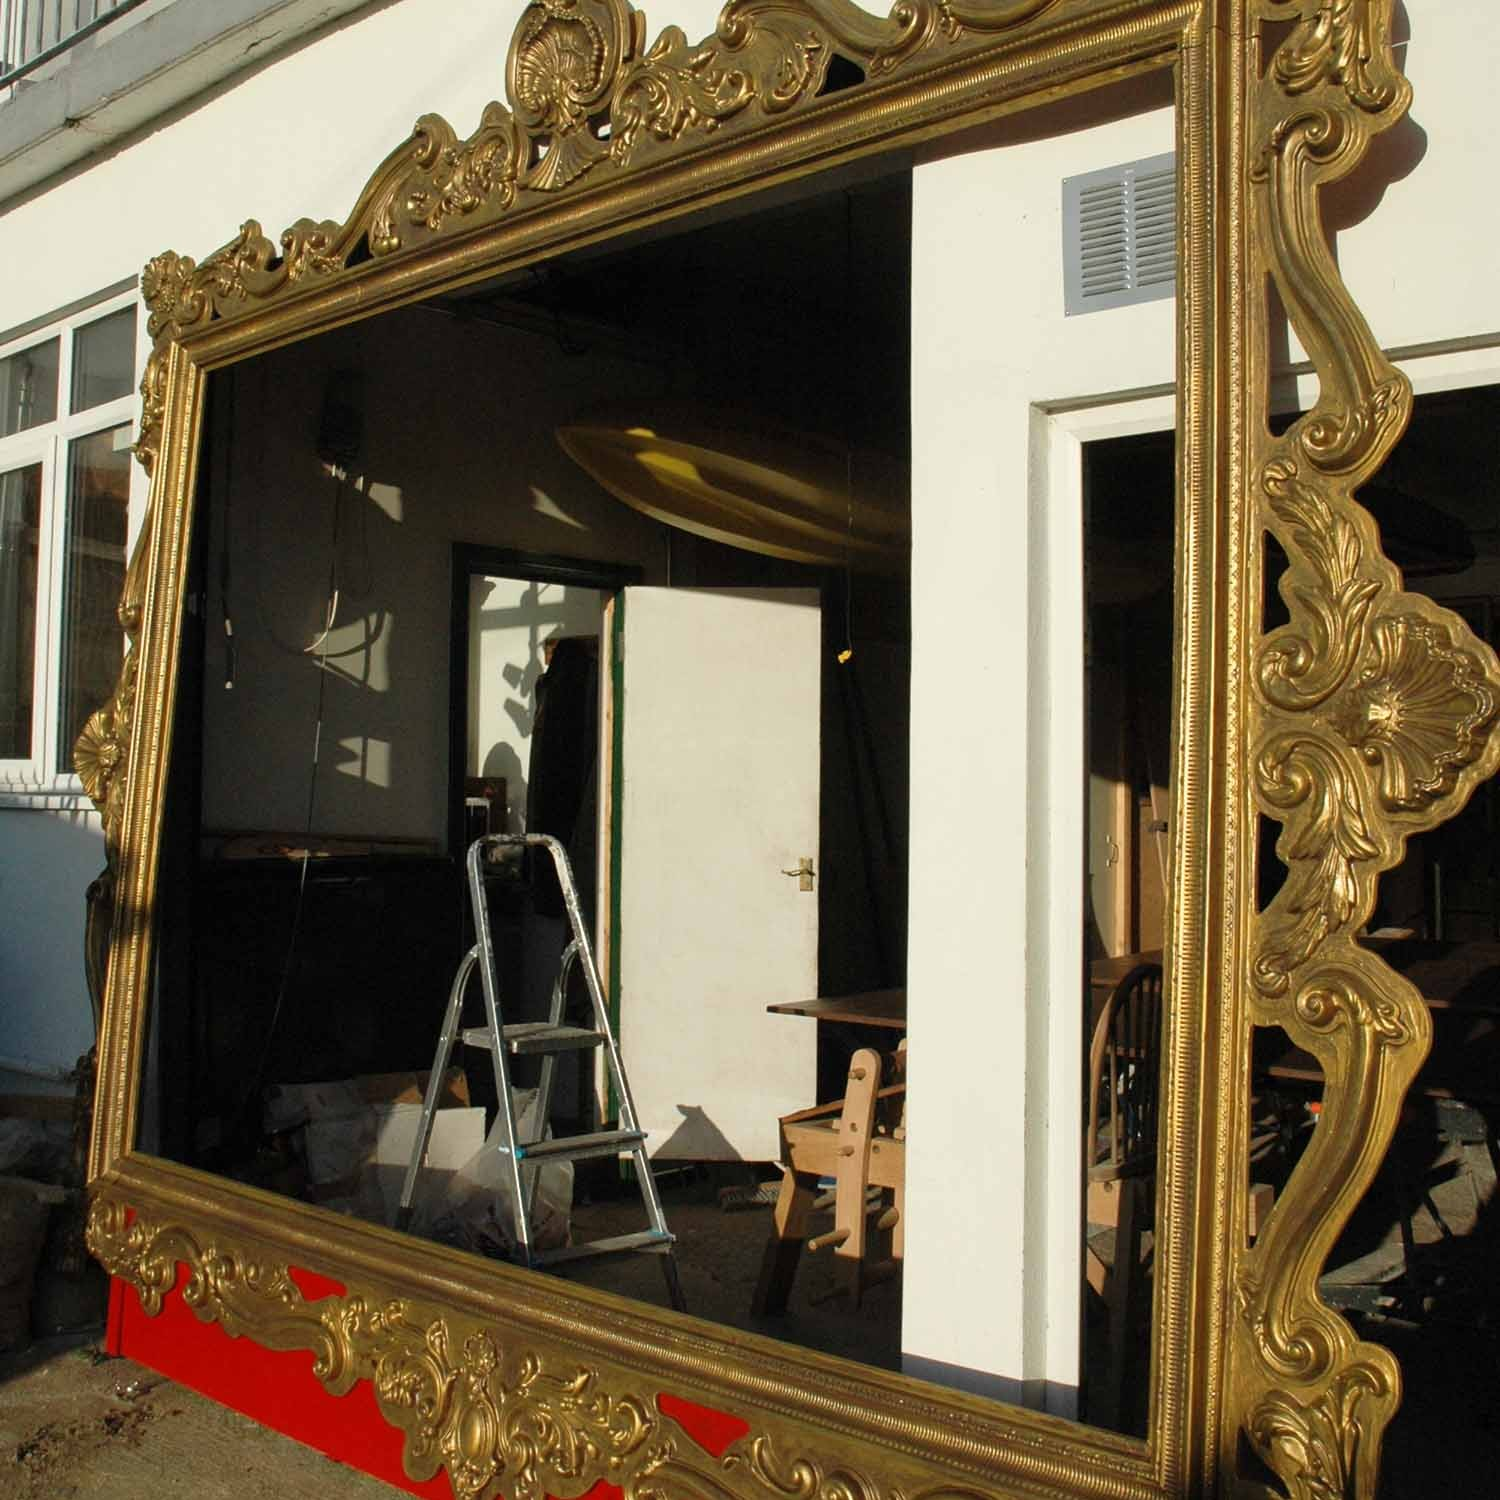 Giant gold frame ornate stage